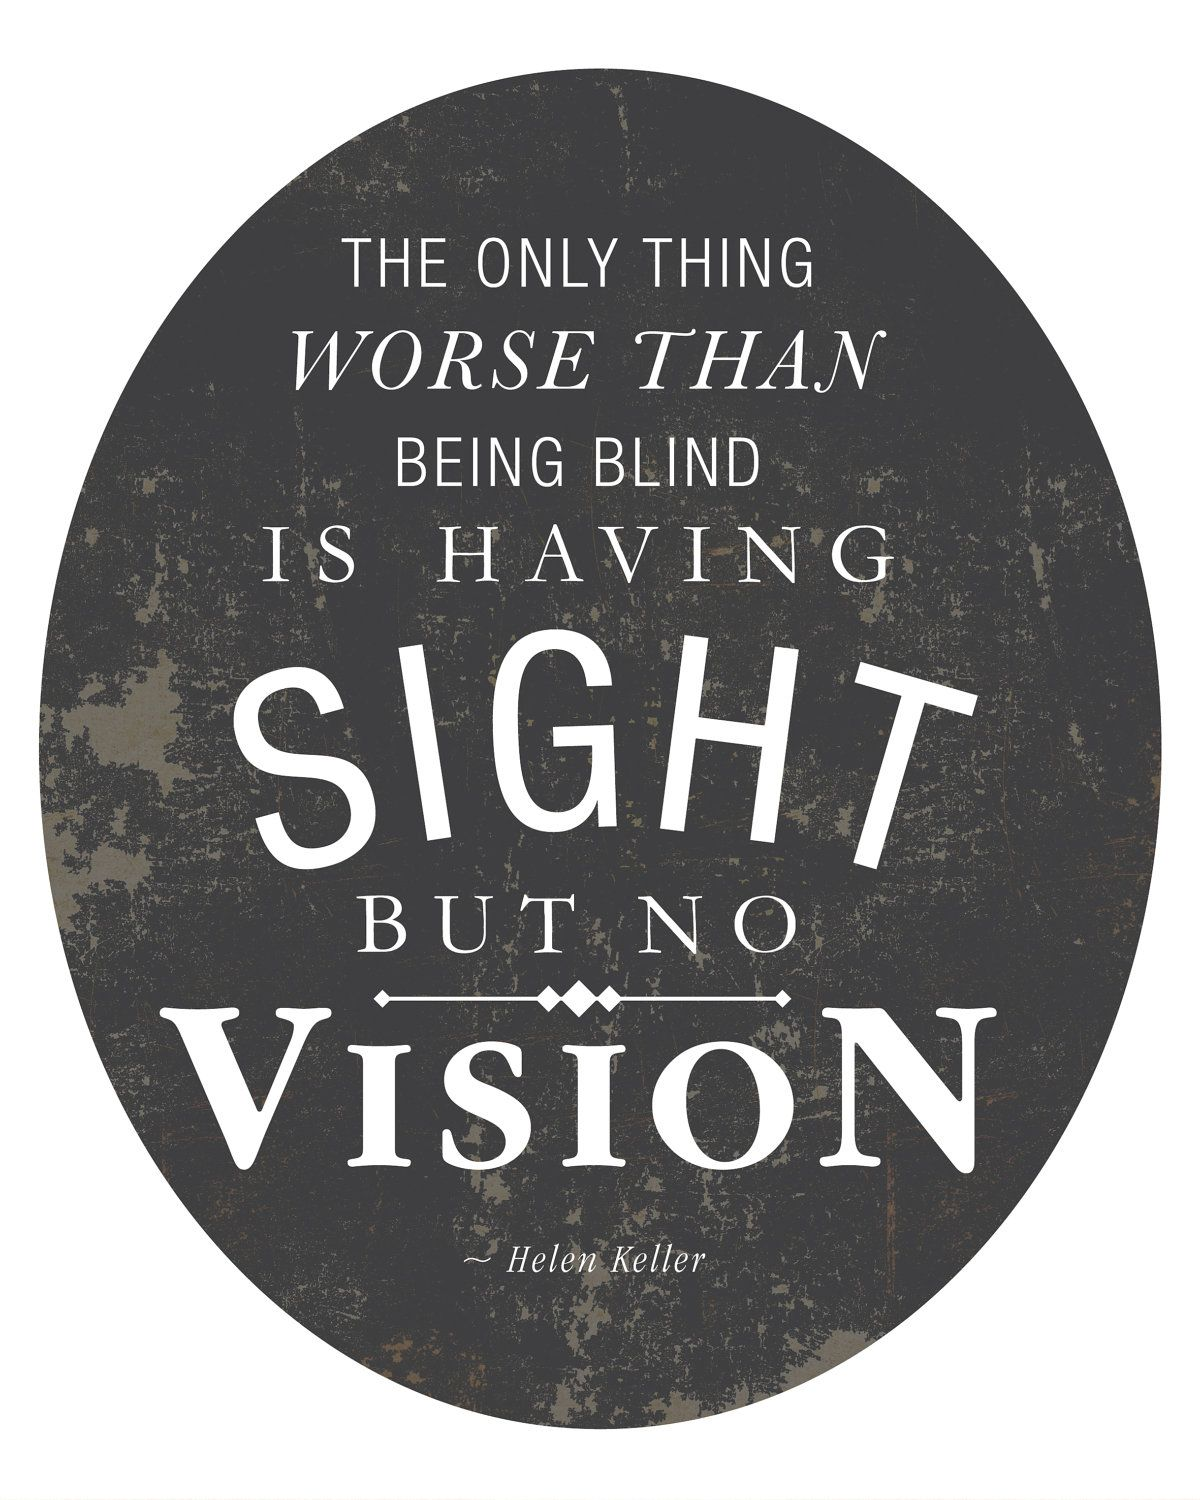 Great Business Quotes Vision: Quote By Helen Keller 8x10 Art Print